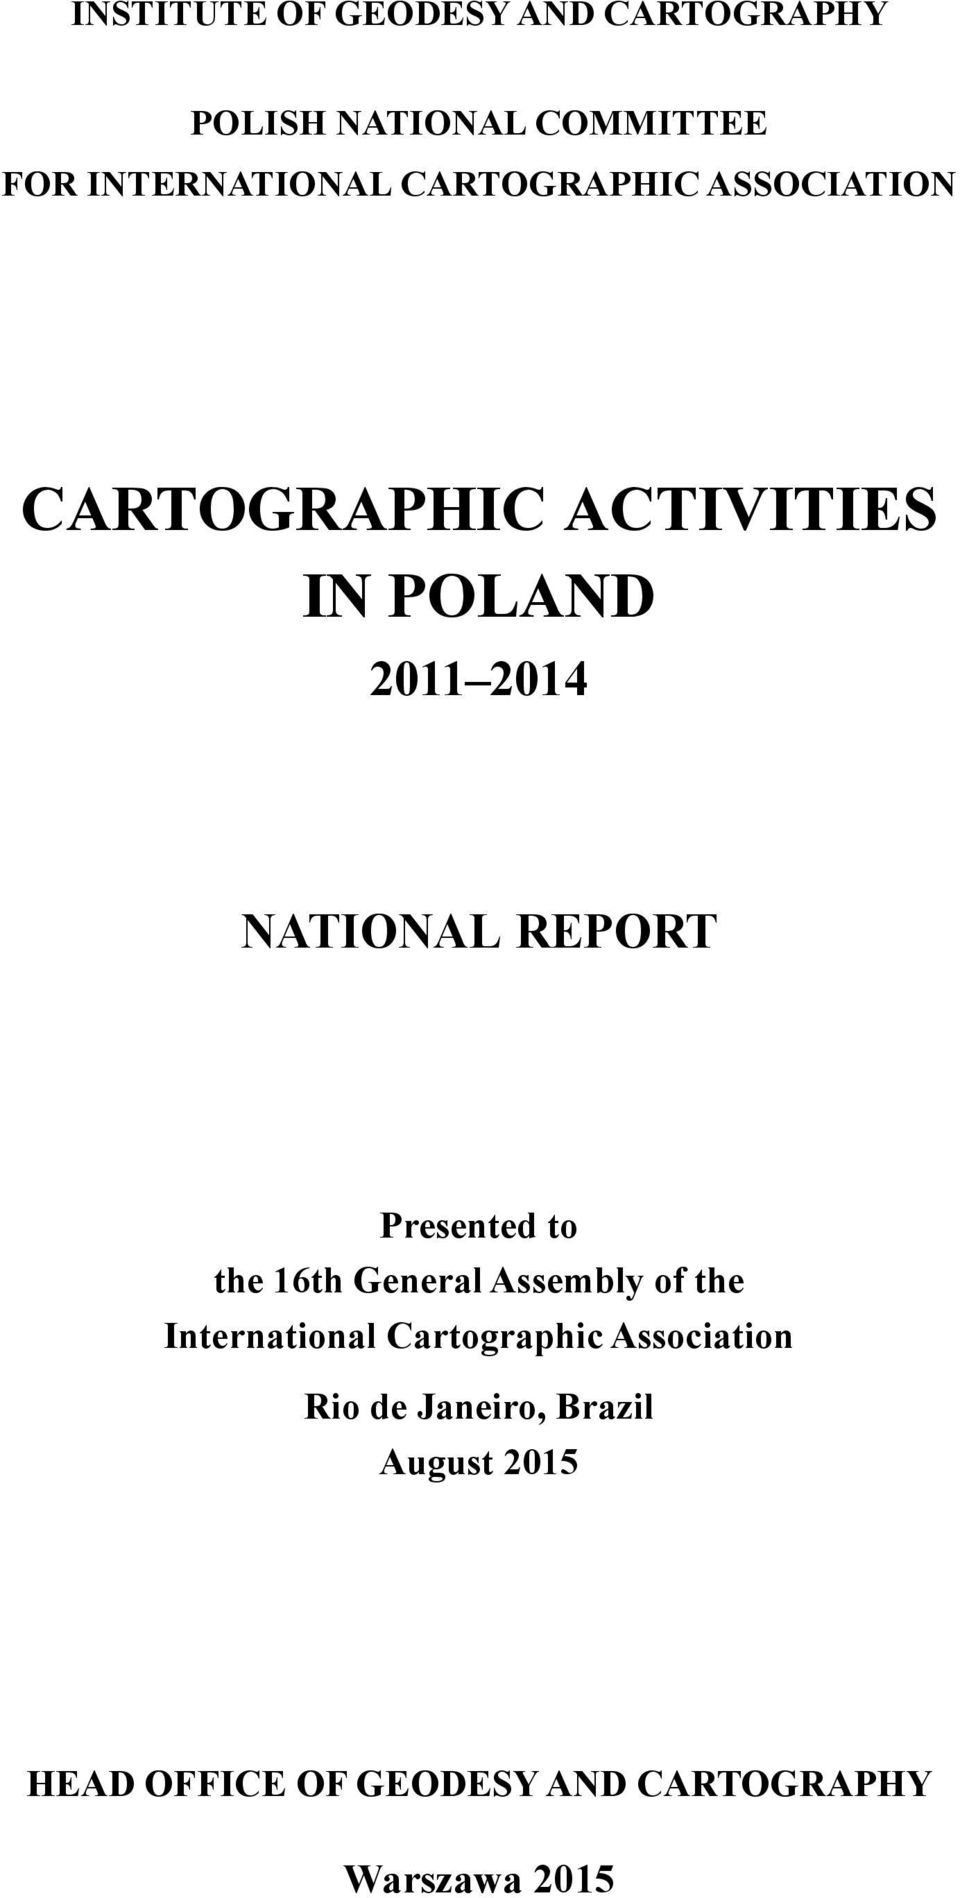 Presented to the 16th General Assembly of the International Cartographic Association